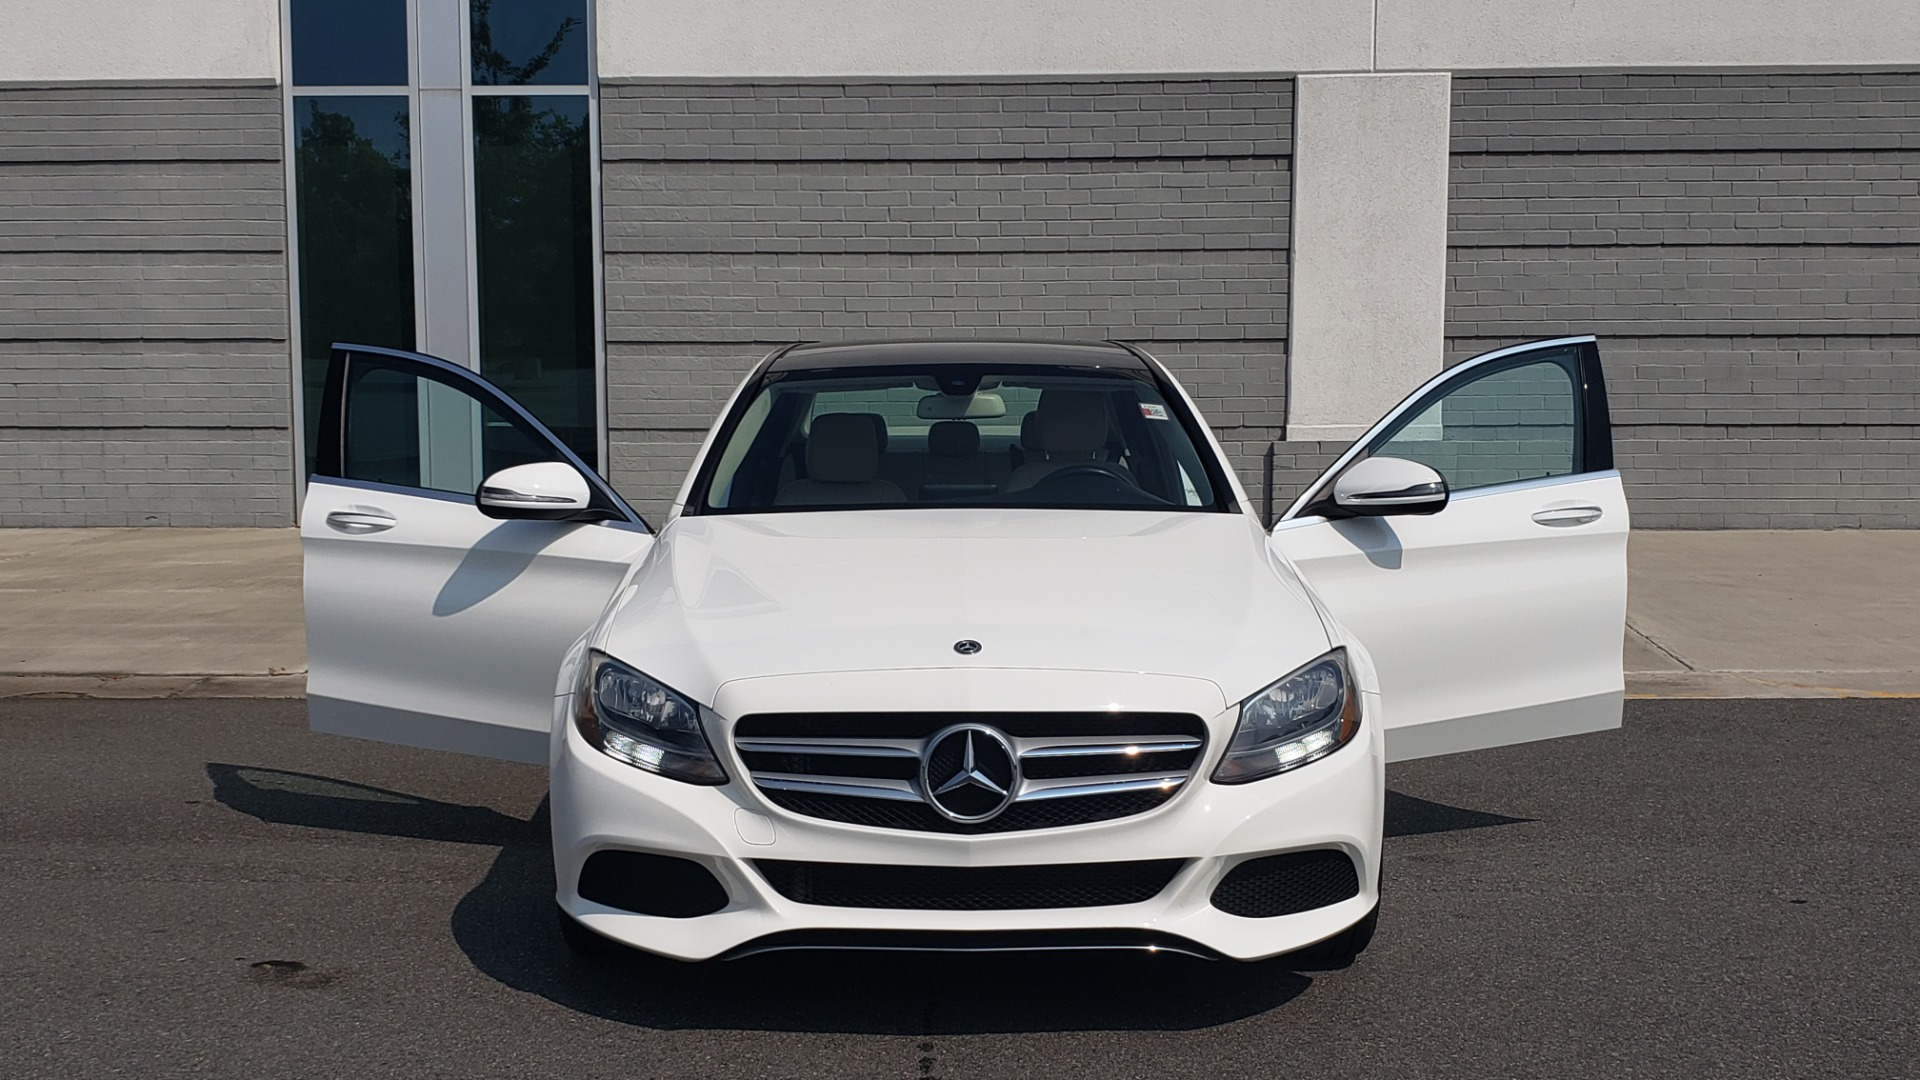 Used 2018 Mercedes-Benz C-CLASS C 300 PREMIUM / KEYLESS-GO / APPLE / PANO-ROOF / REARVIEW for sale $28,295 at Formula Imports in Charlotte NC 28227 21